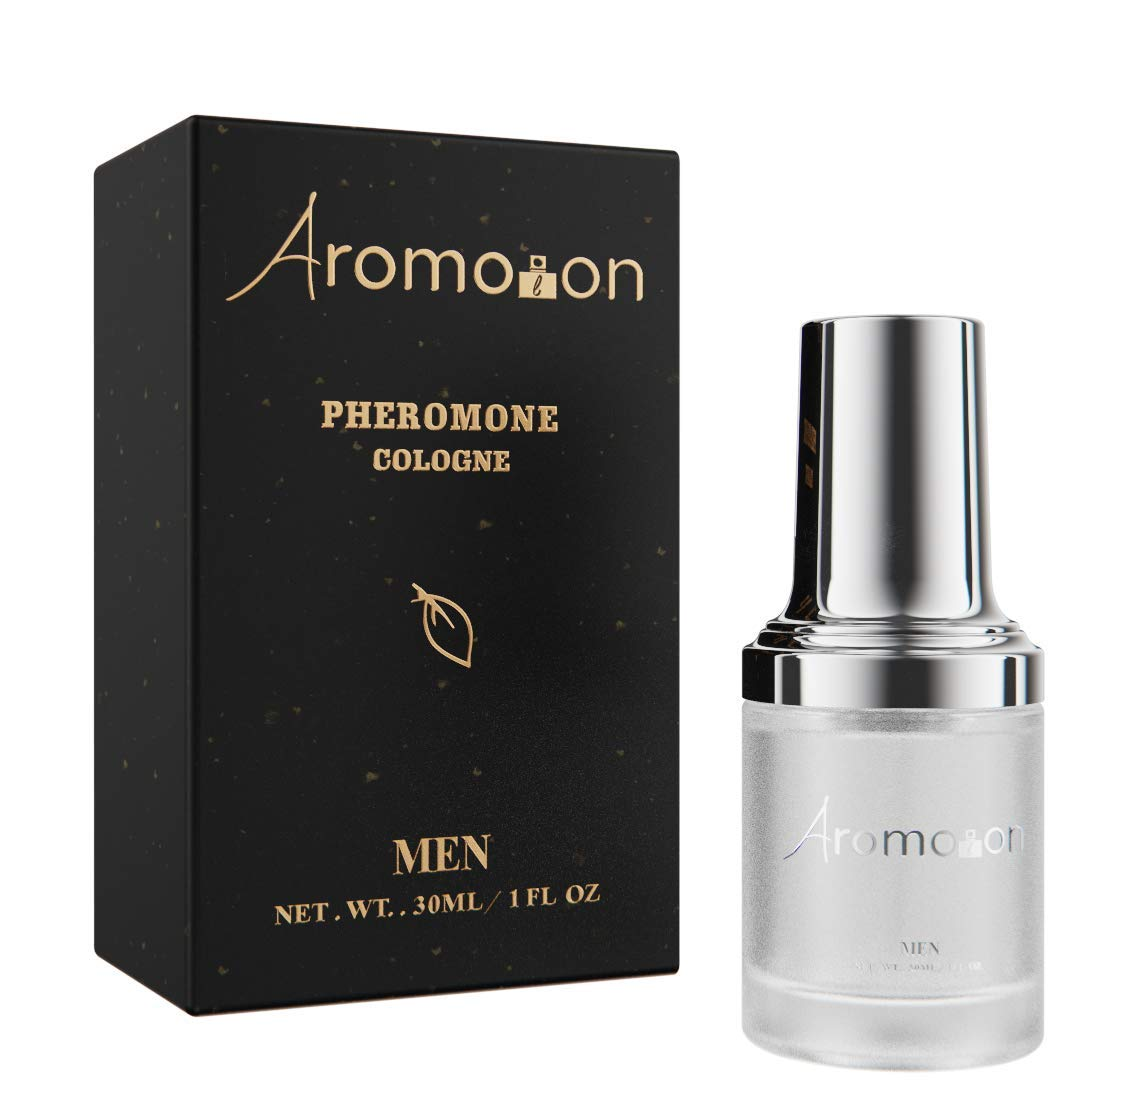 Aromolon Pheromones for Men – Unique Scent Pheromones to Attract Women Concentrate – Bold and Conc Cologne for Him – Seducing Pheromone Cologne for the Perfect Gentleman – Fresh Woody Fragrance – 30ml